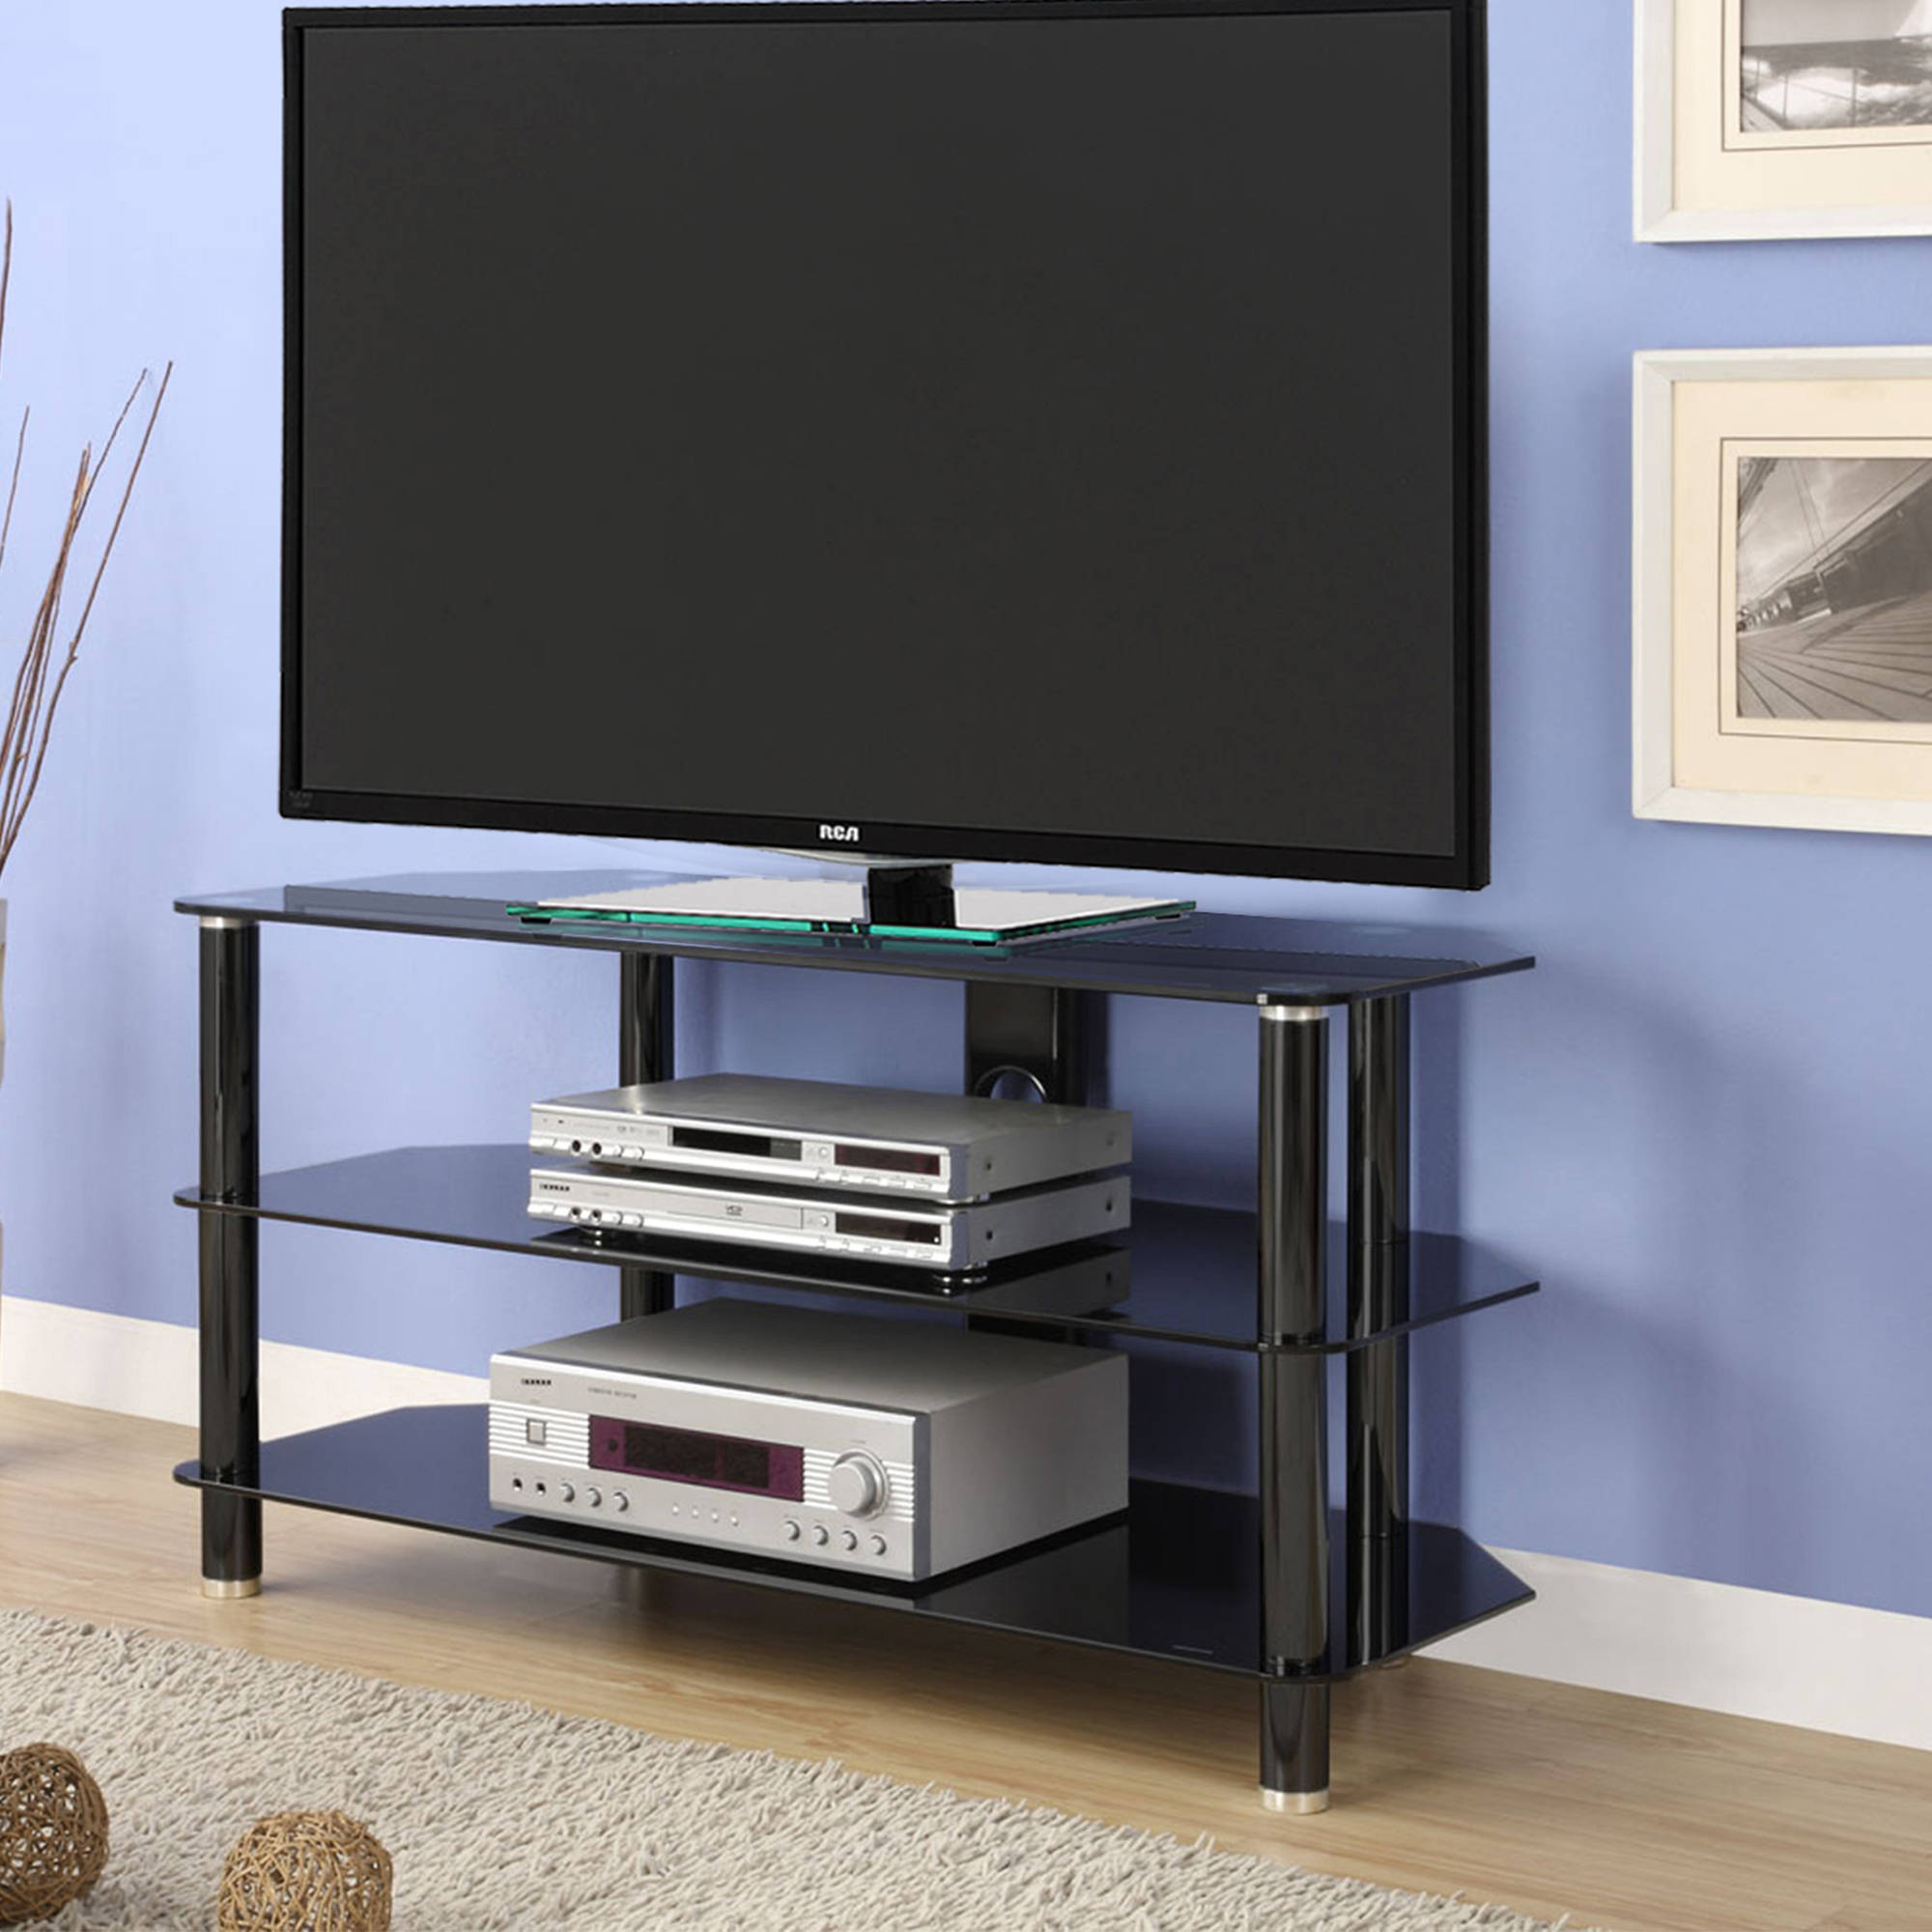 Innovex Tempered Black Glass Concord 42 TV Stand for TVs up to 52\